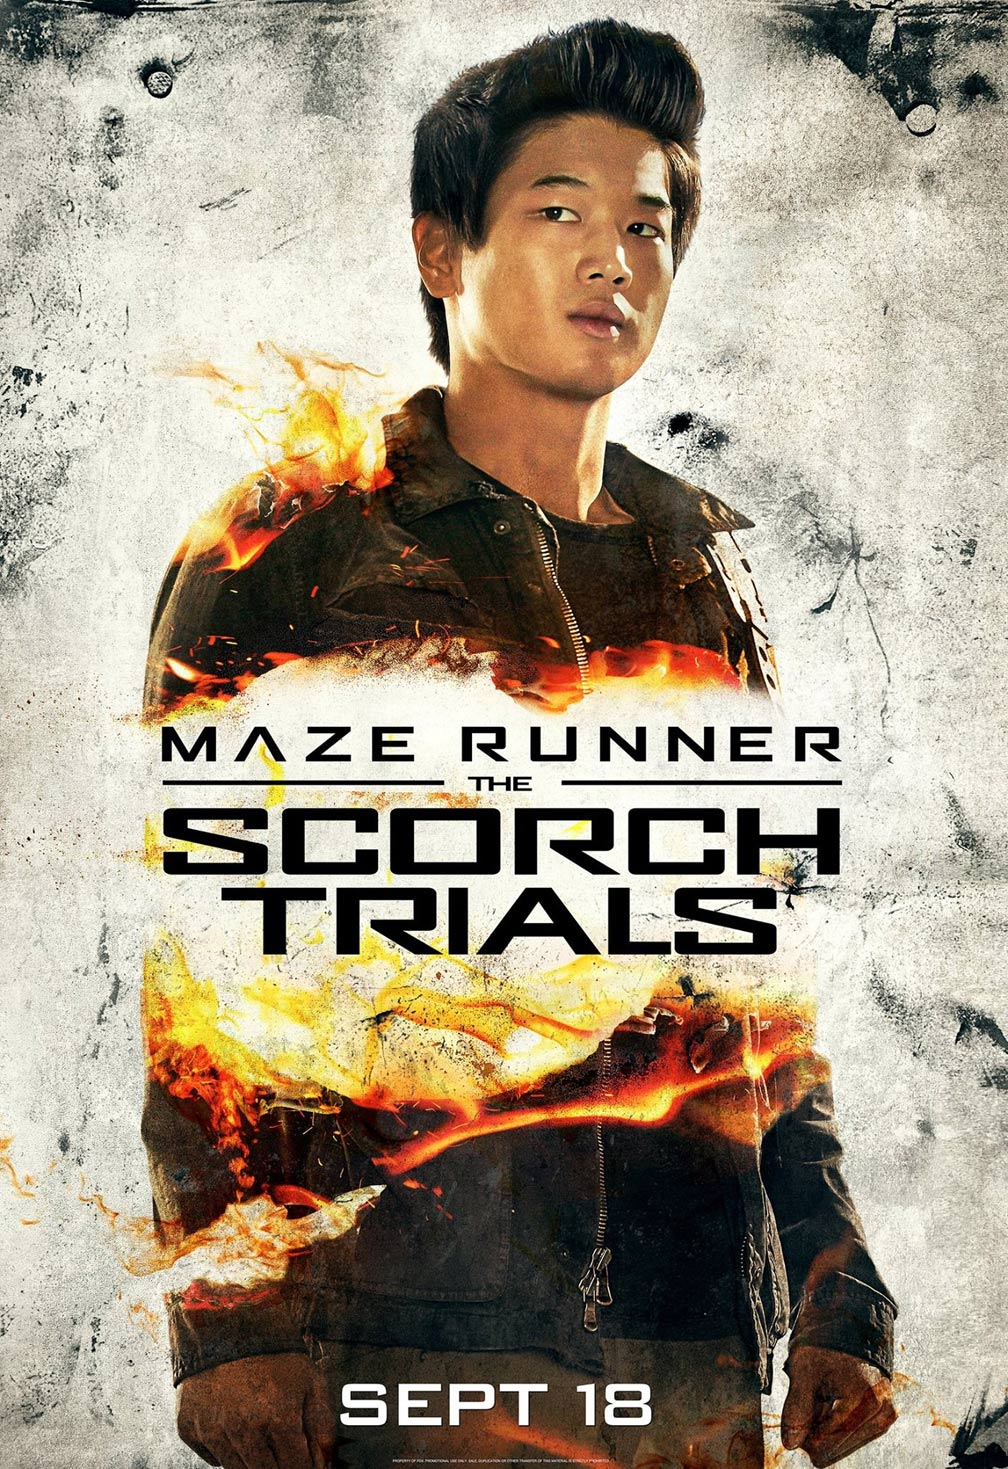 Maze Runner: The Scorch Trials (2015) Posters - TrailerAddict